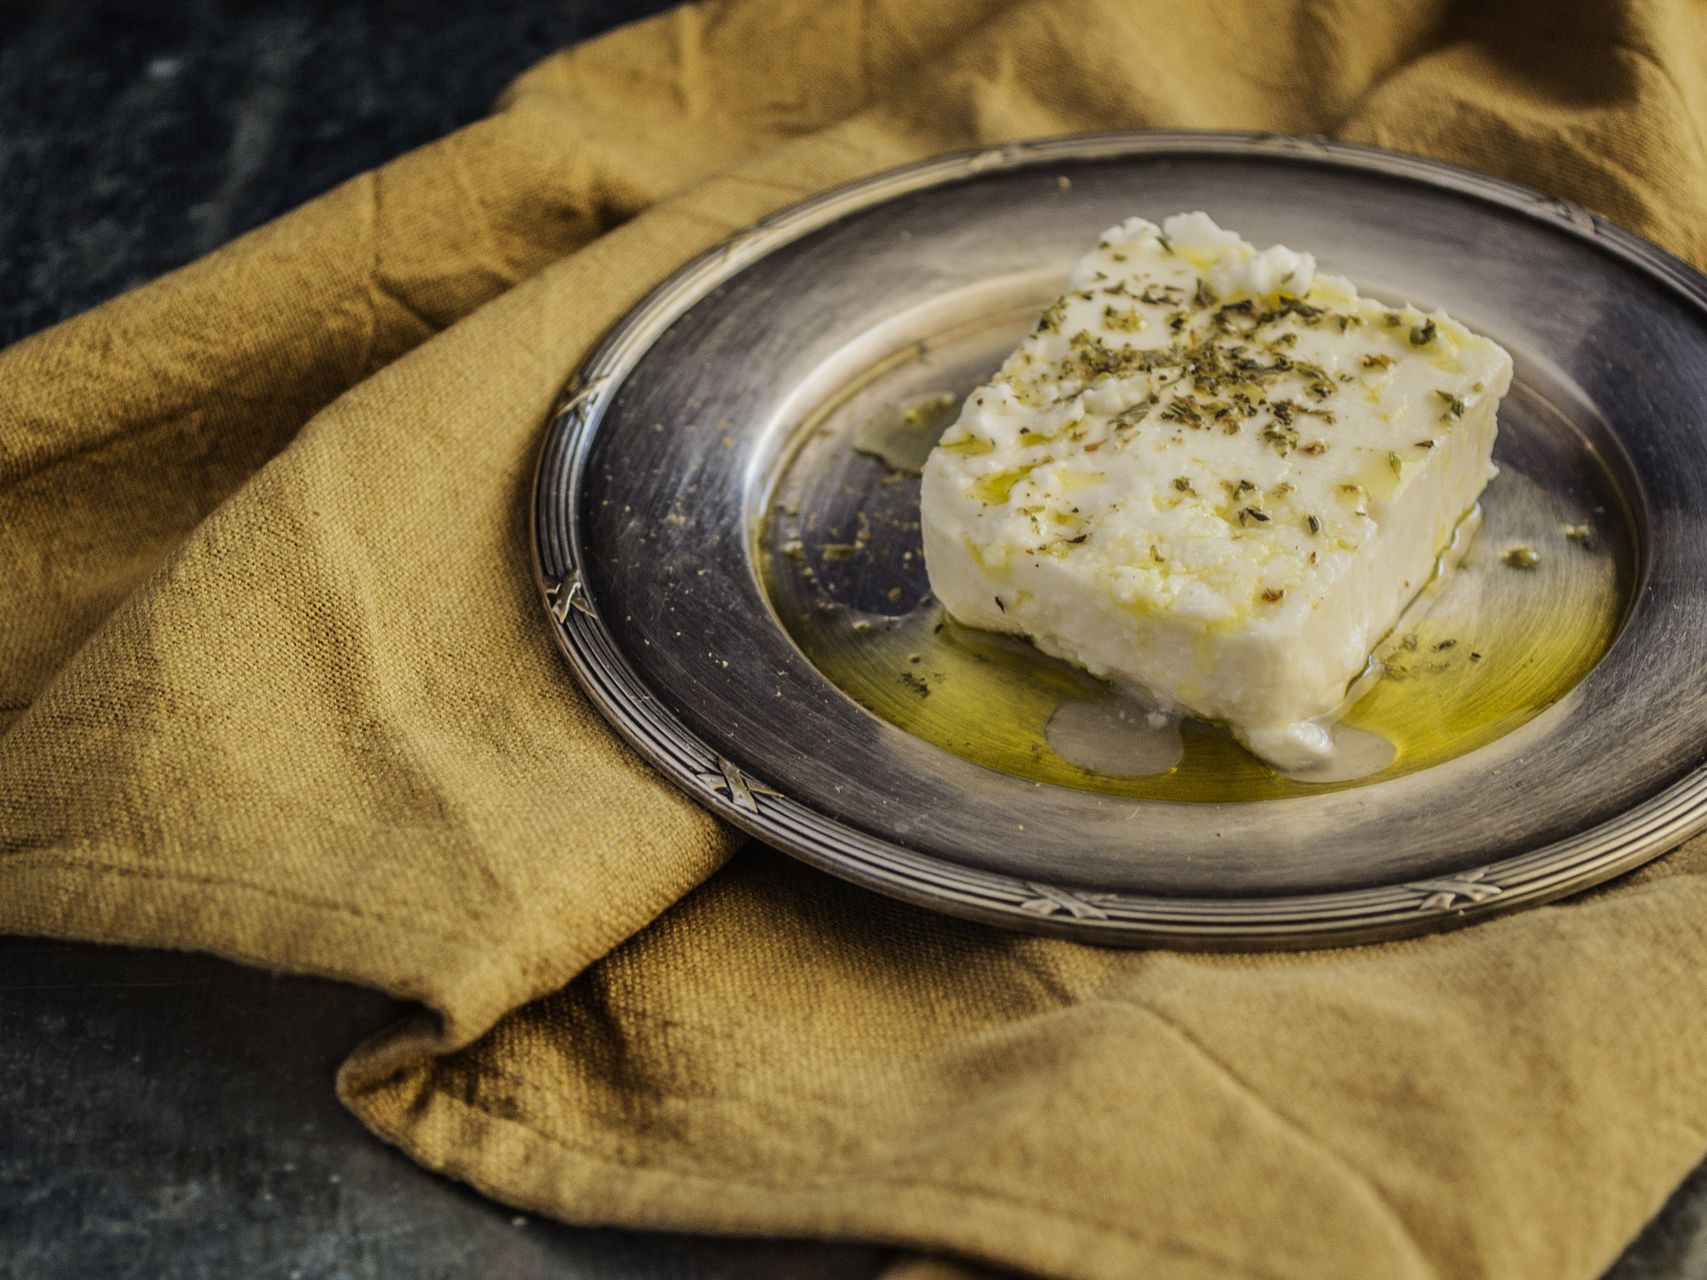 What Is Feta Cheese?